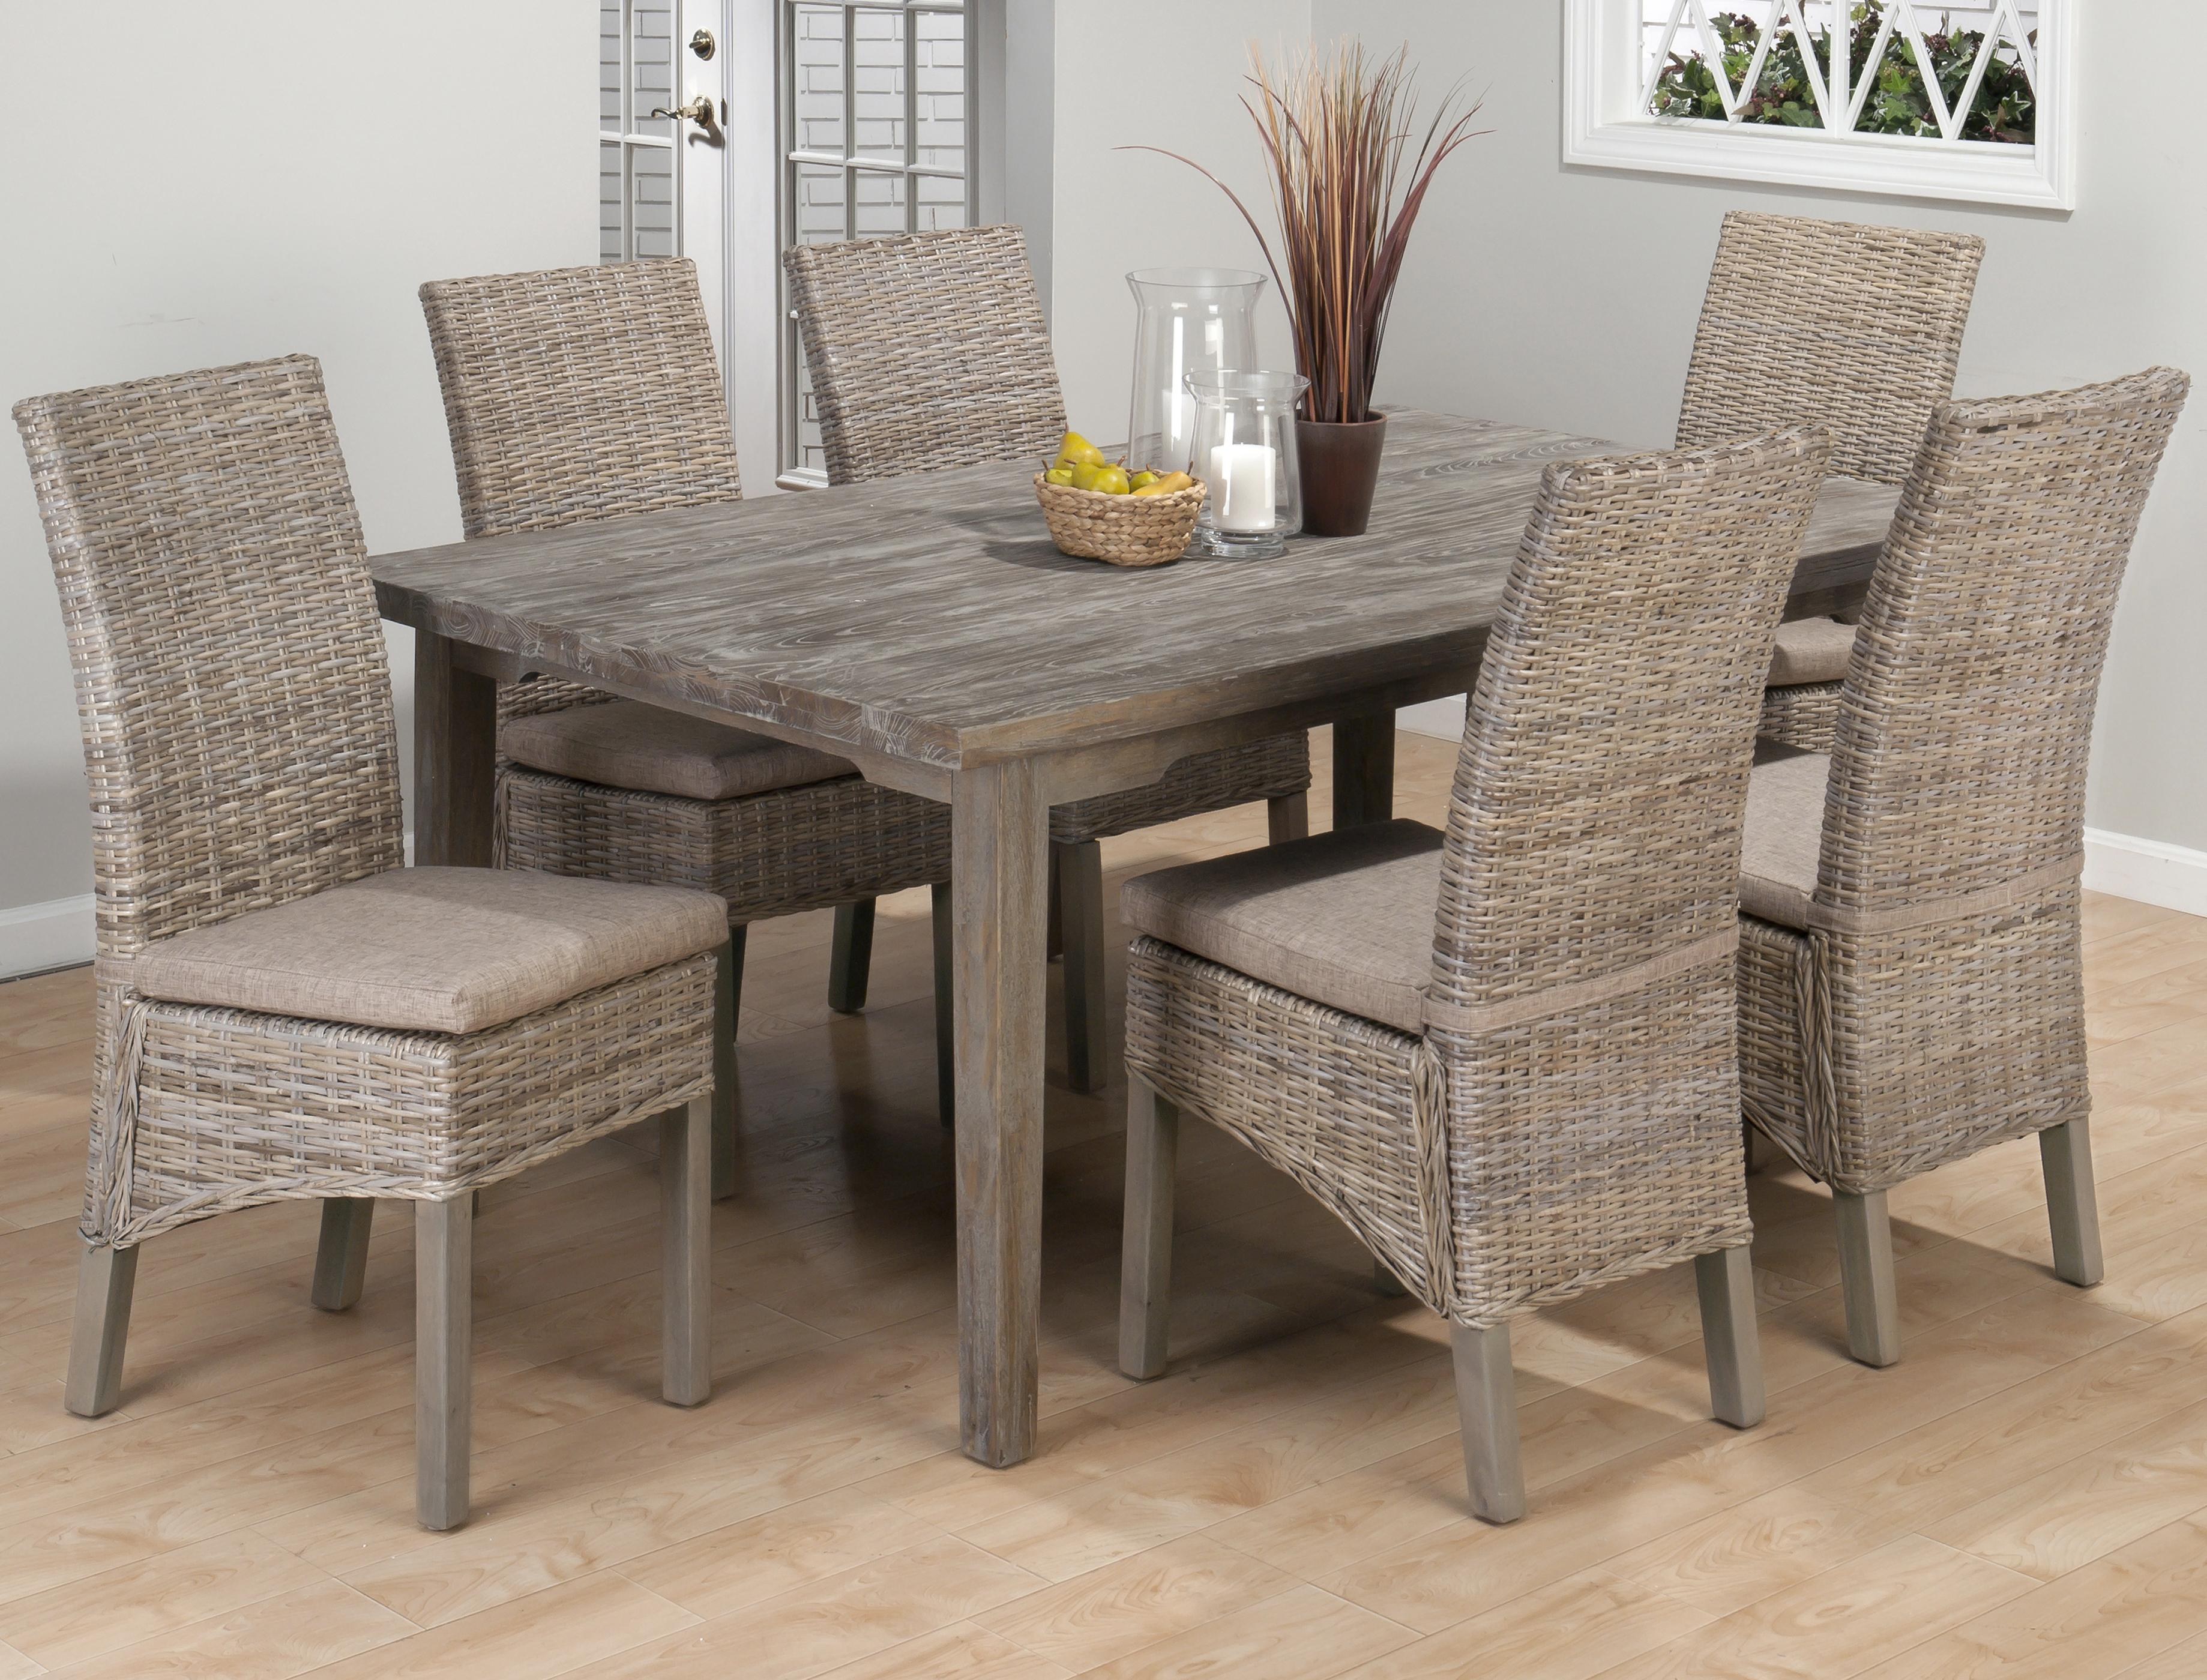 Distressed Wood Dining Table Set Wood Kitchen Table Sets Distressed Dining  Table Distressed Round Dining Table.